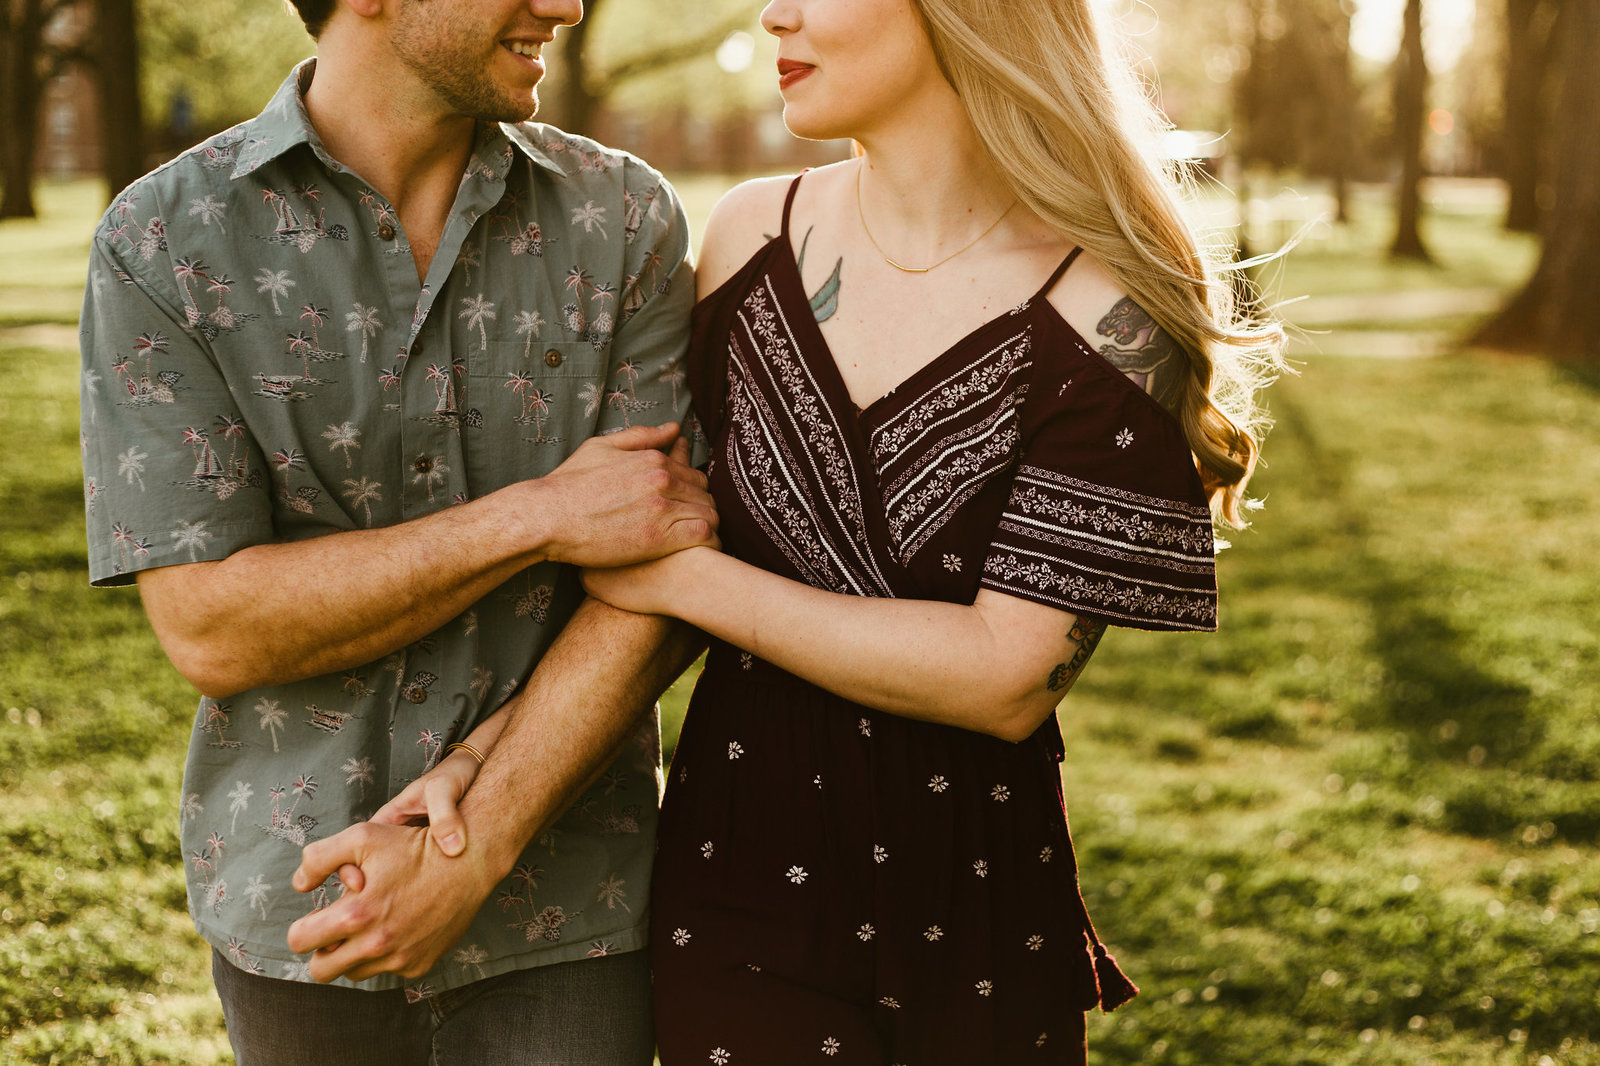 Sara-Lane-Stevie-Photography-Engagement-Shoot-Alyse-Michael-LRE-28B